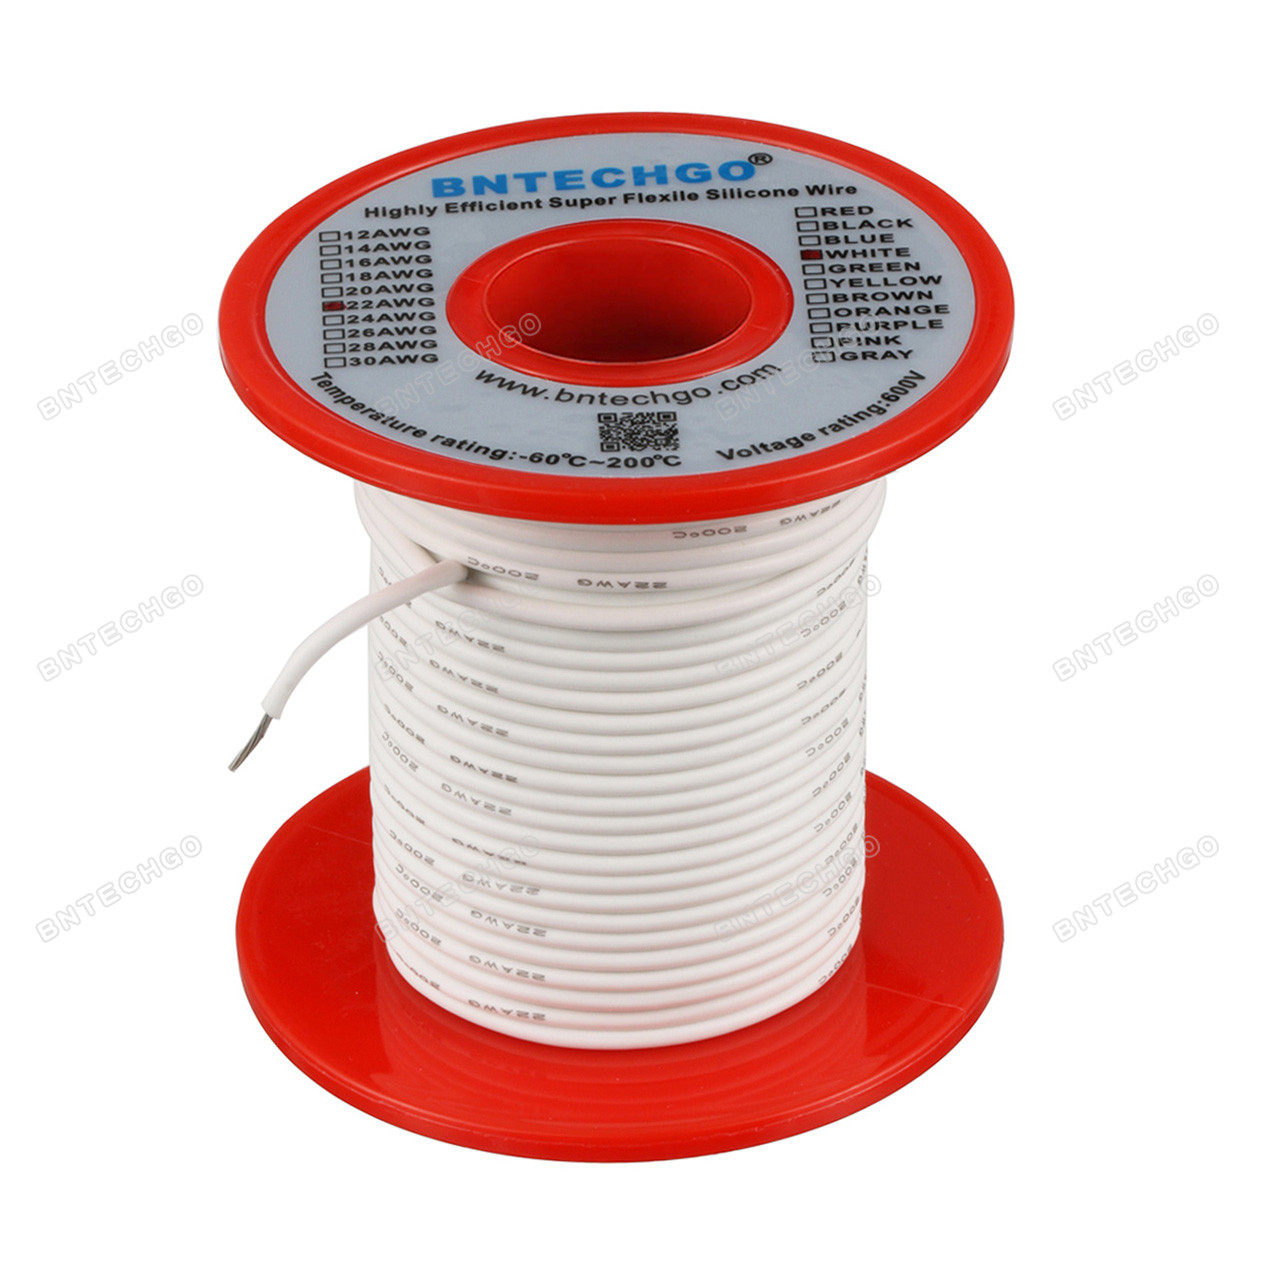 EnBoHao 0.2 mm/² 24 AWG PVC Tinned Copper Cable Electronic Electrical Wire Kit Solid Color Spool Low Voltage 2 x 10 Meters